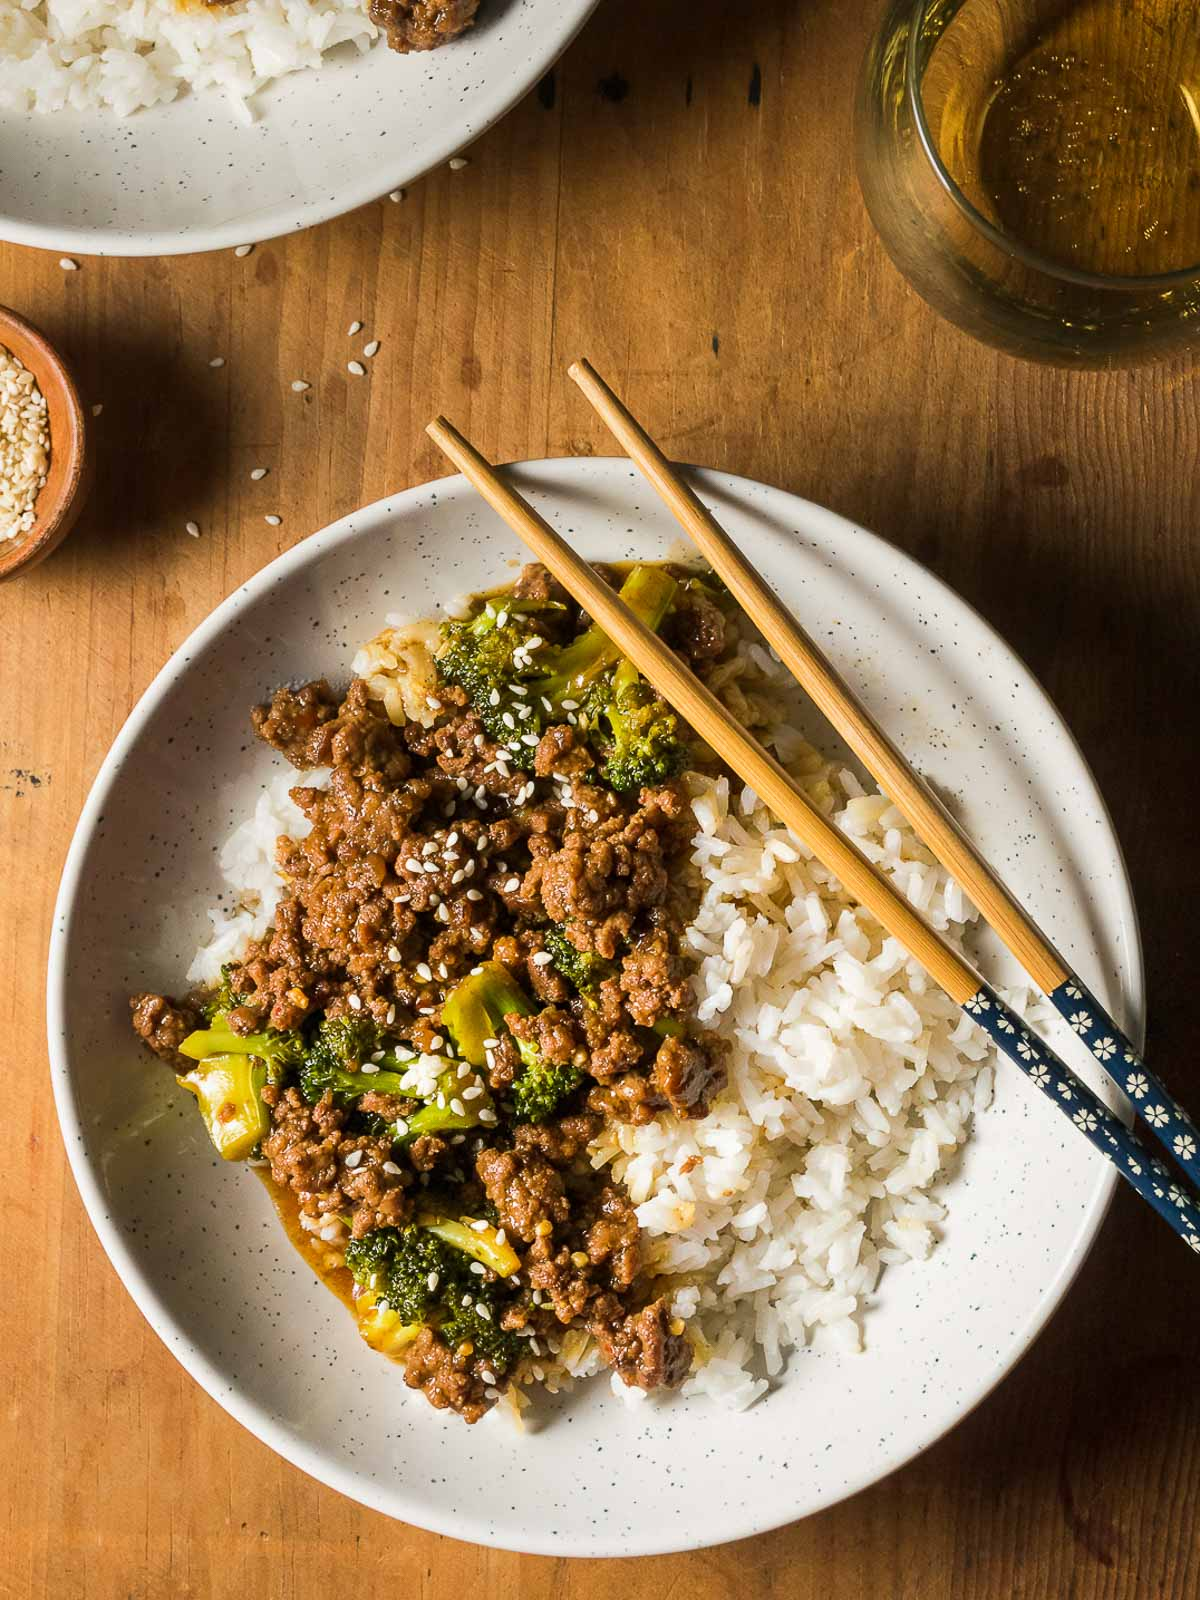 Overhead of a bowl of Ground Beef and Broccoli stir fry and rice with chopsticks.